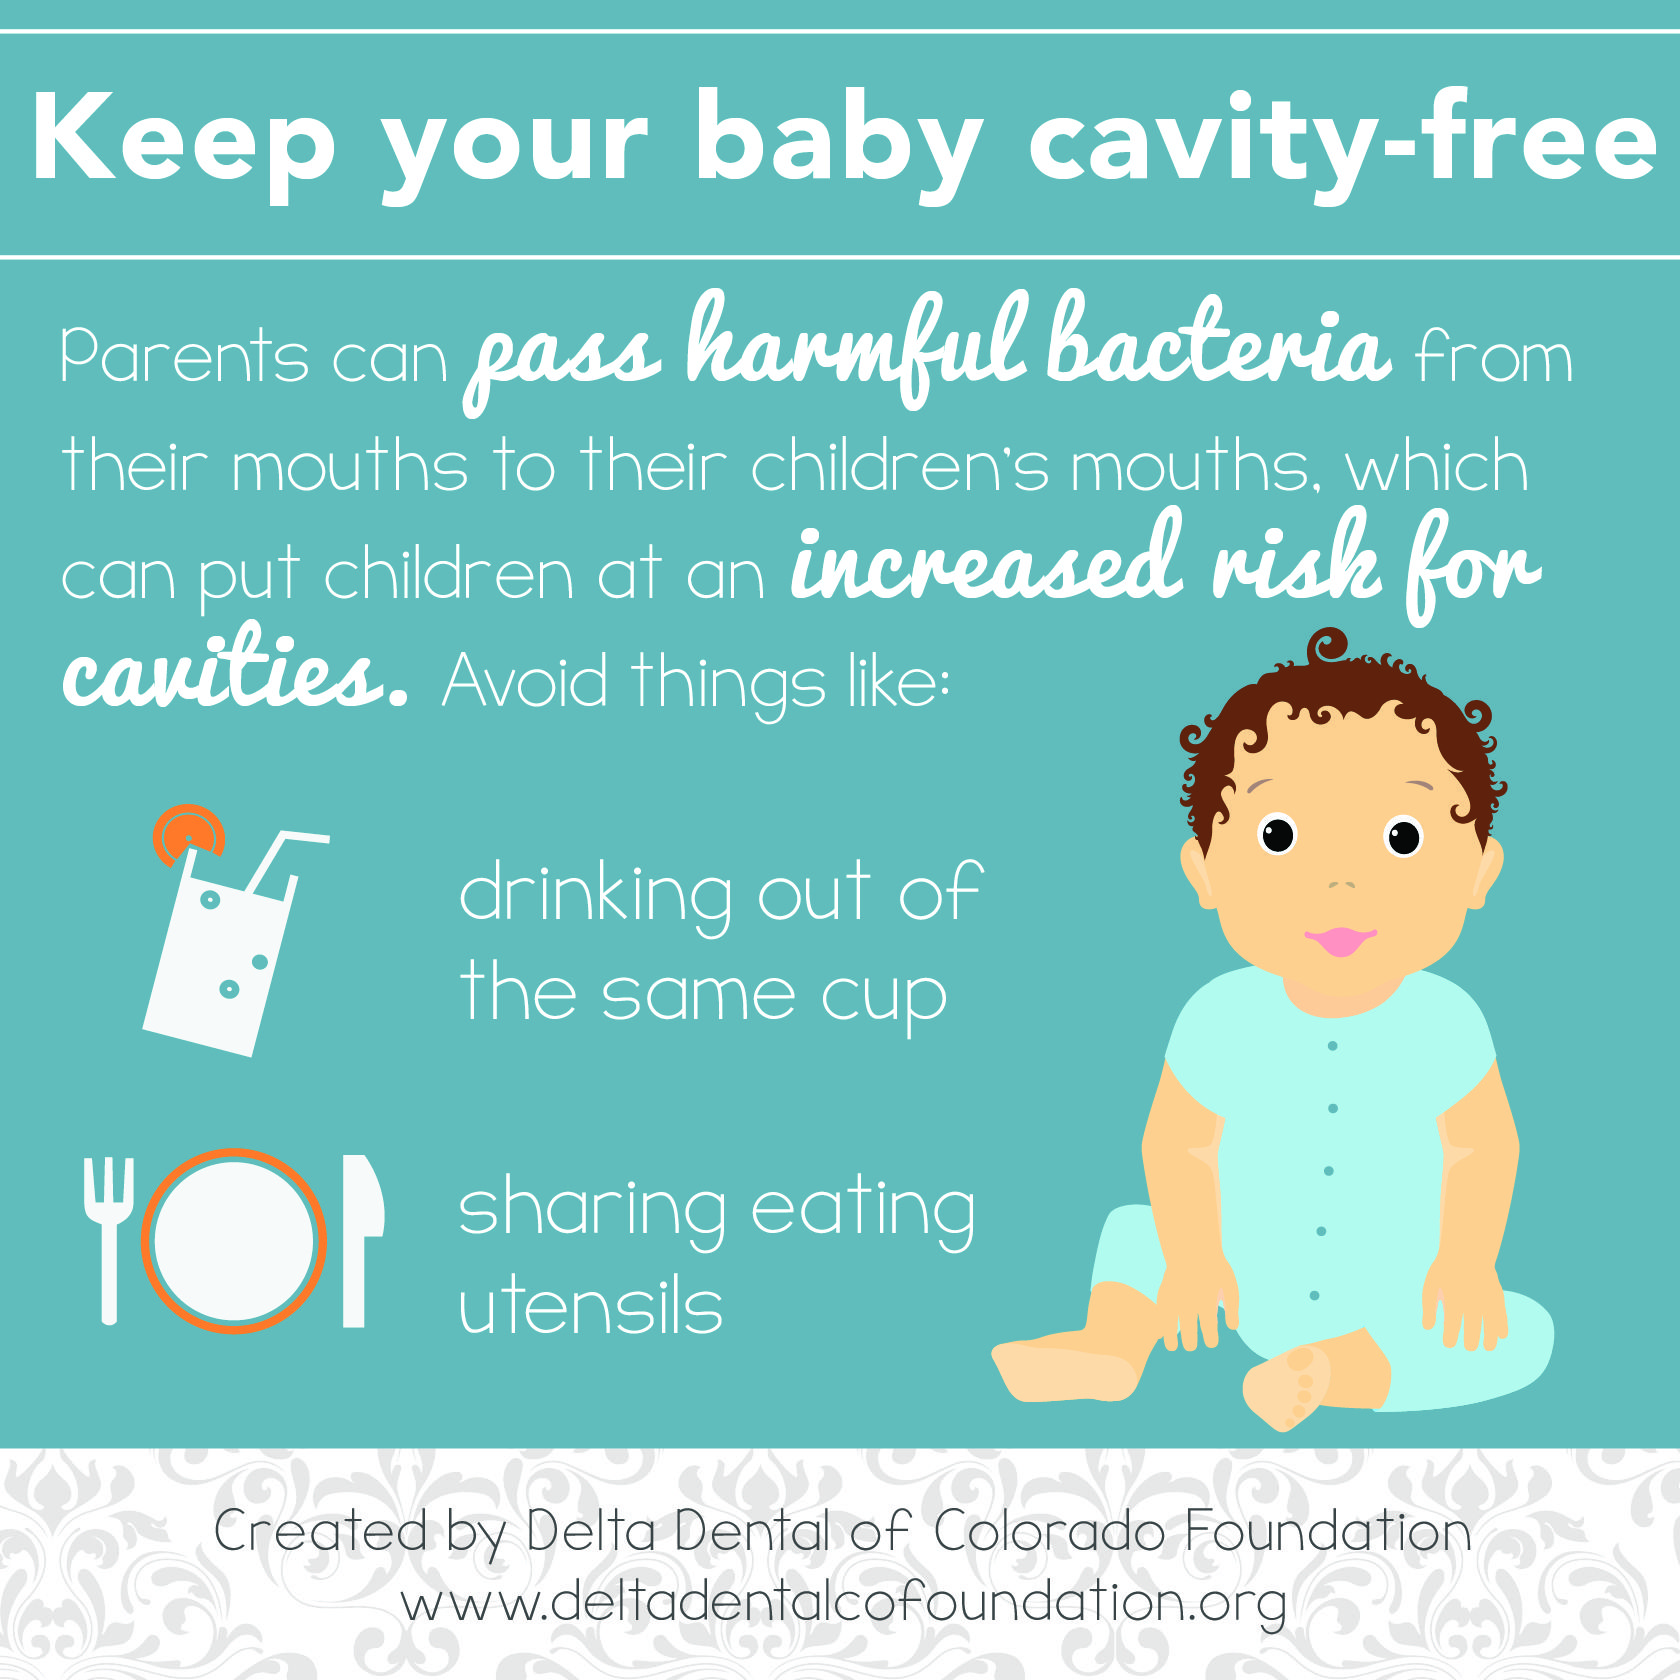 Keep your baby cavity-free. Canyon Ridge Pediatric Dentistry, Parker ...